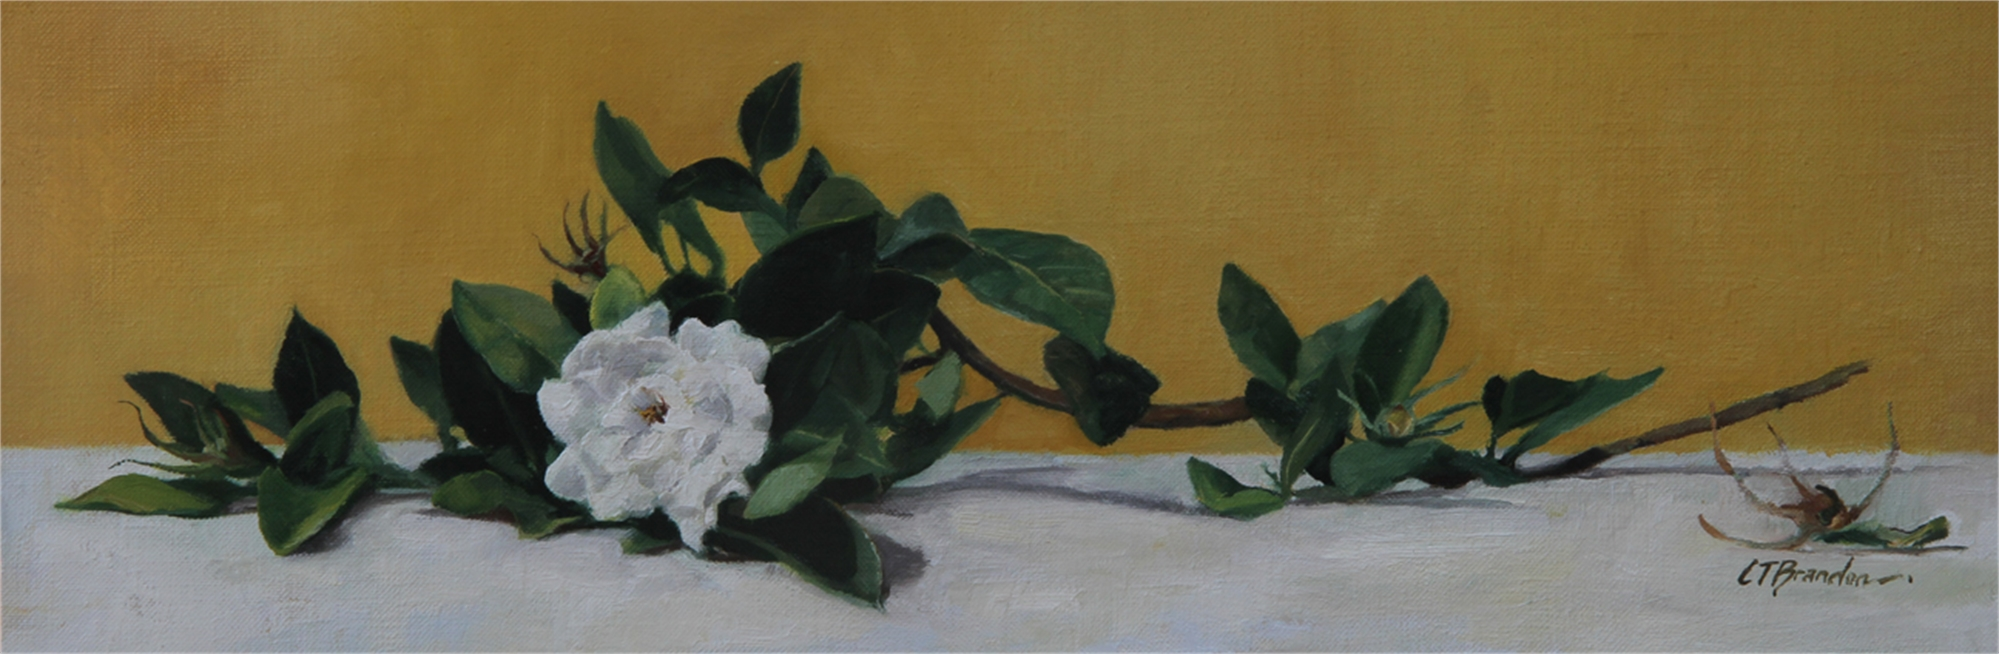 Gardenia on Her Side by Linda Tracey Brandon